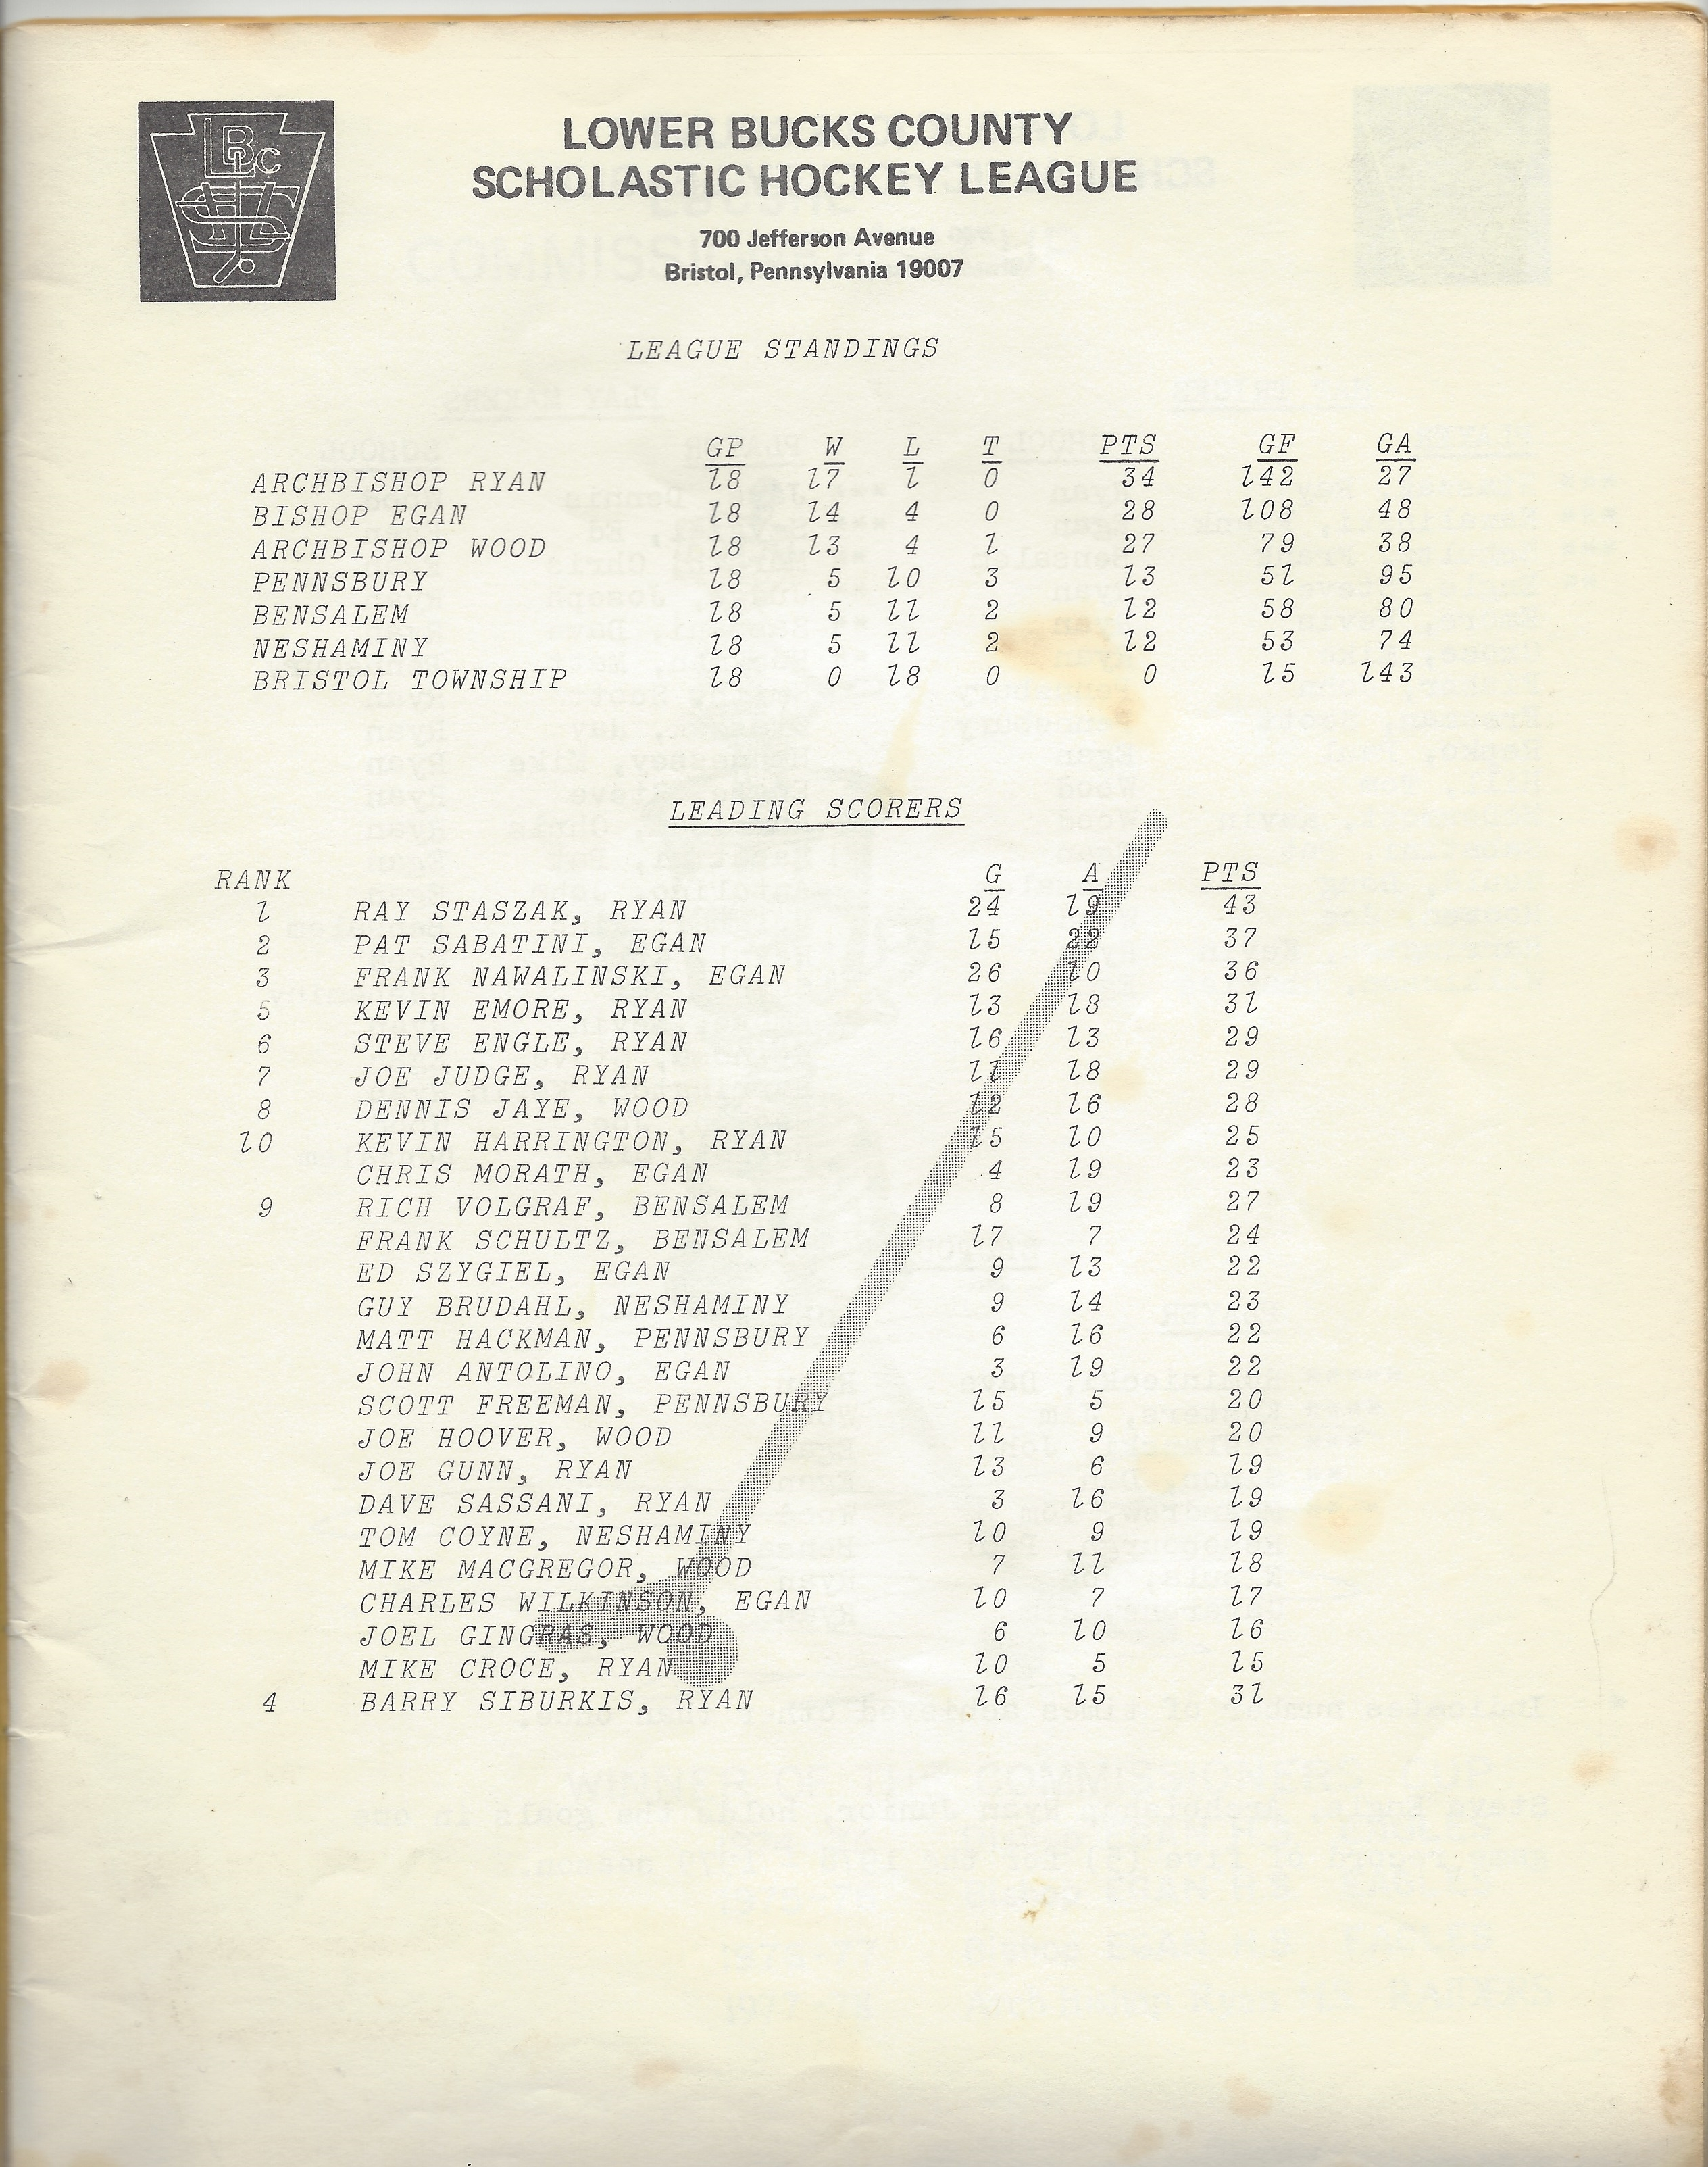 1979 LBCSHL Stats and Standings